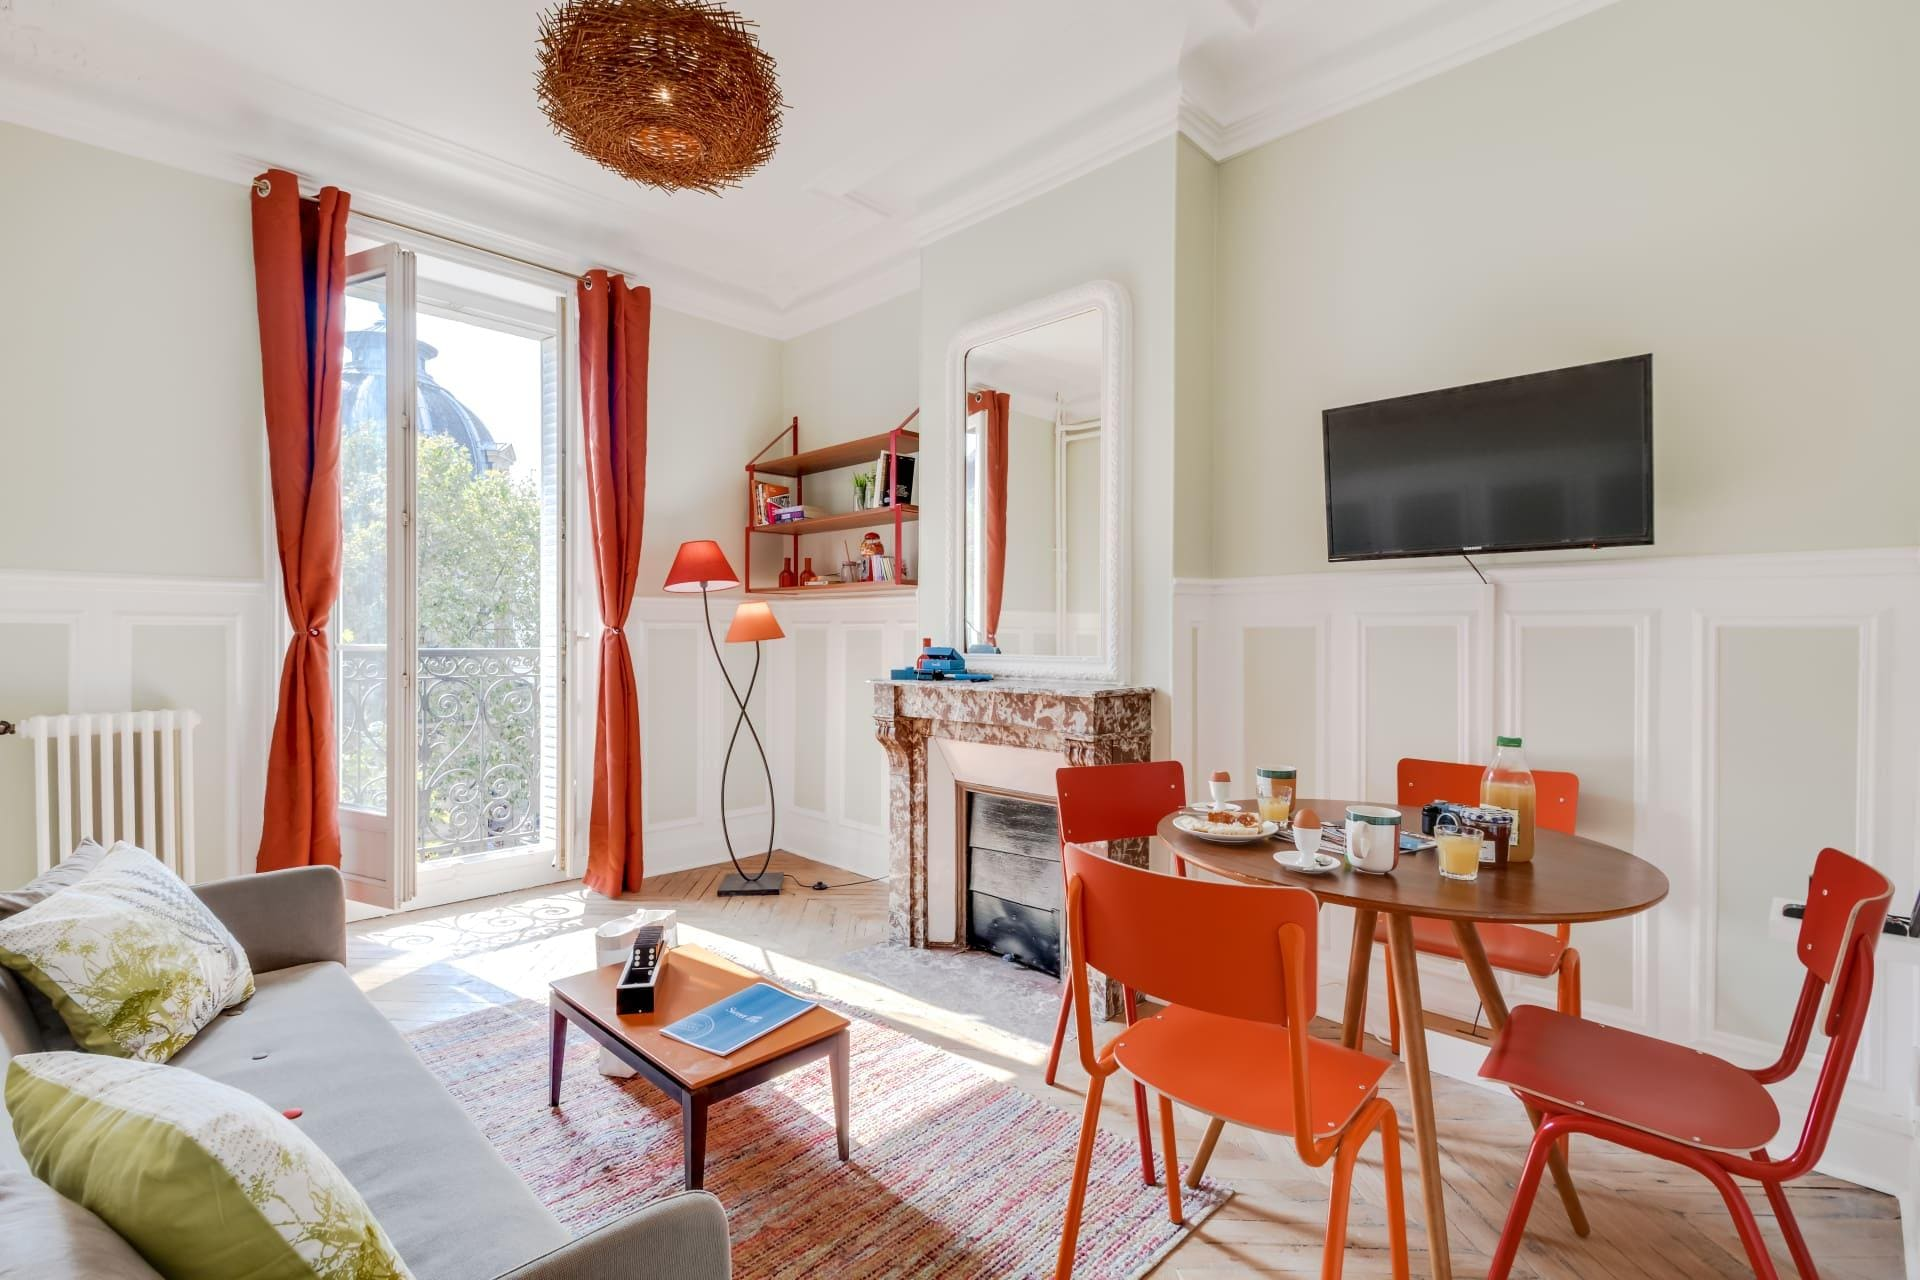 Colourful One-bedroom Apartment Near Notre Dame